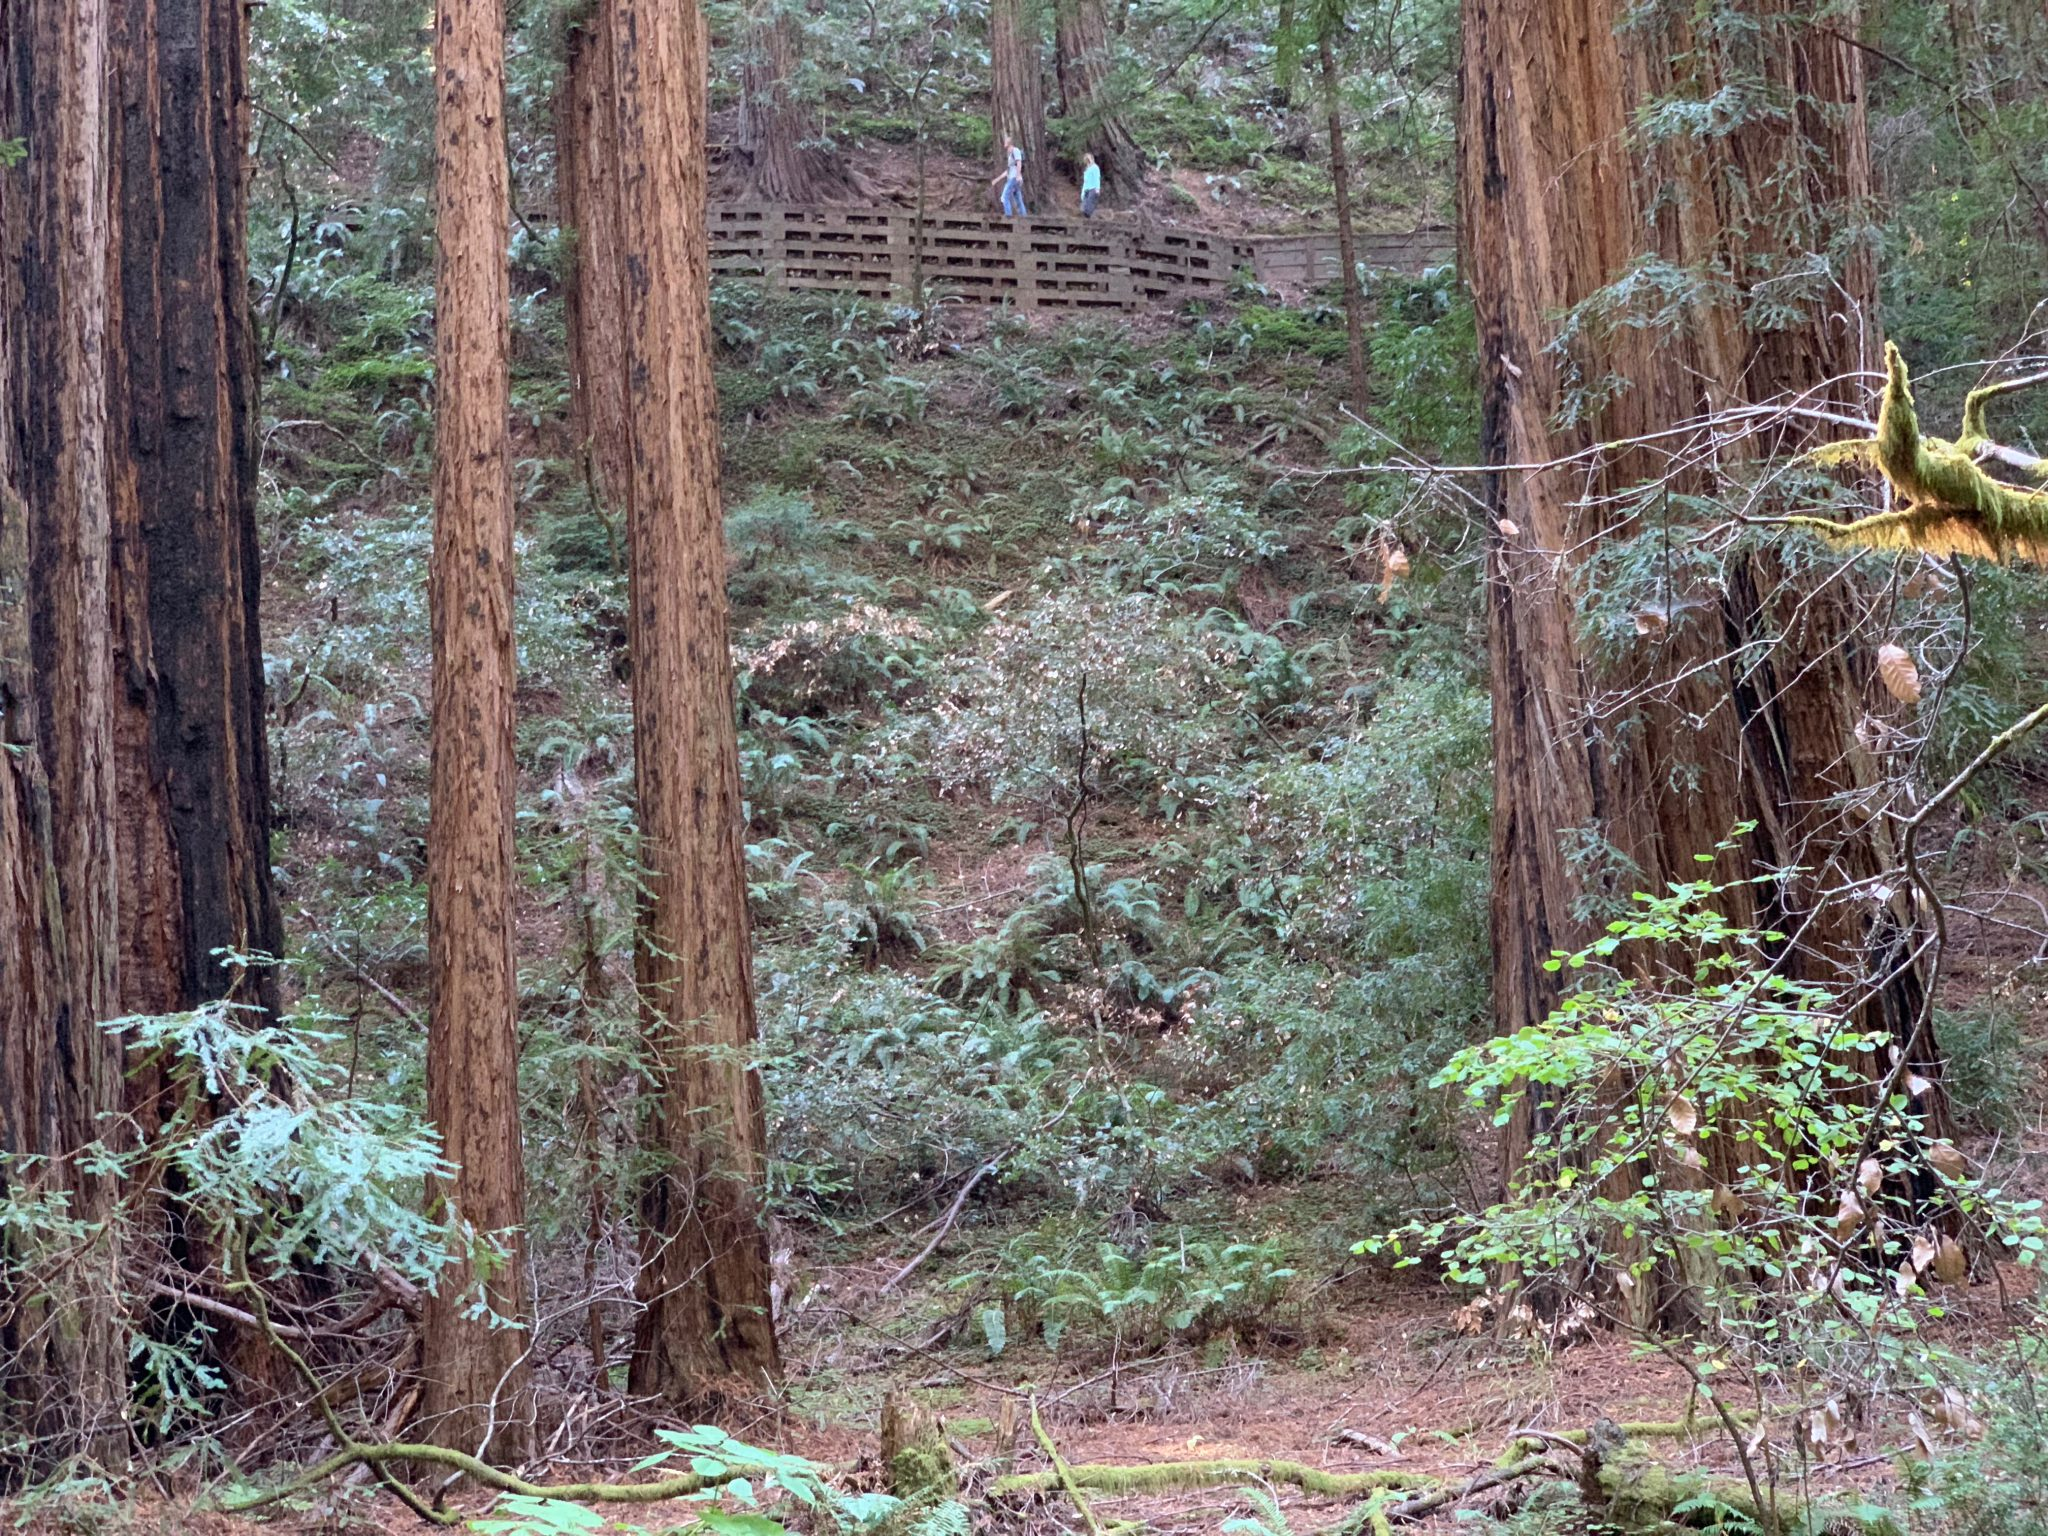 Looking up at Hillside Trail Muir Woods